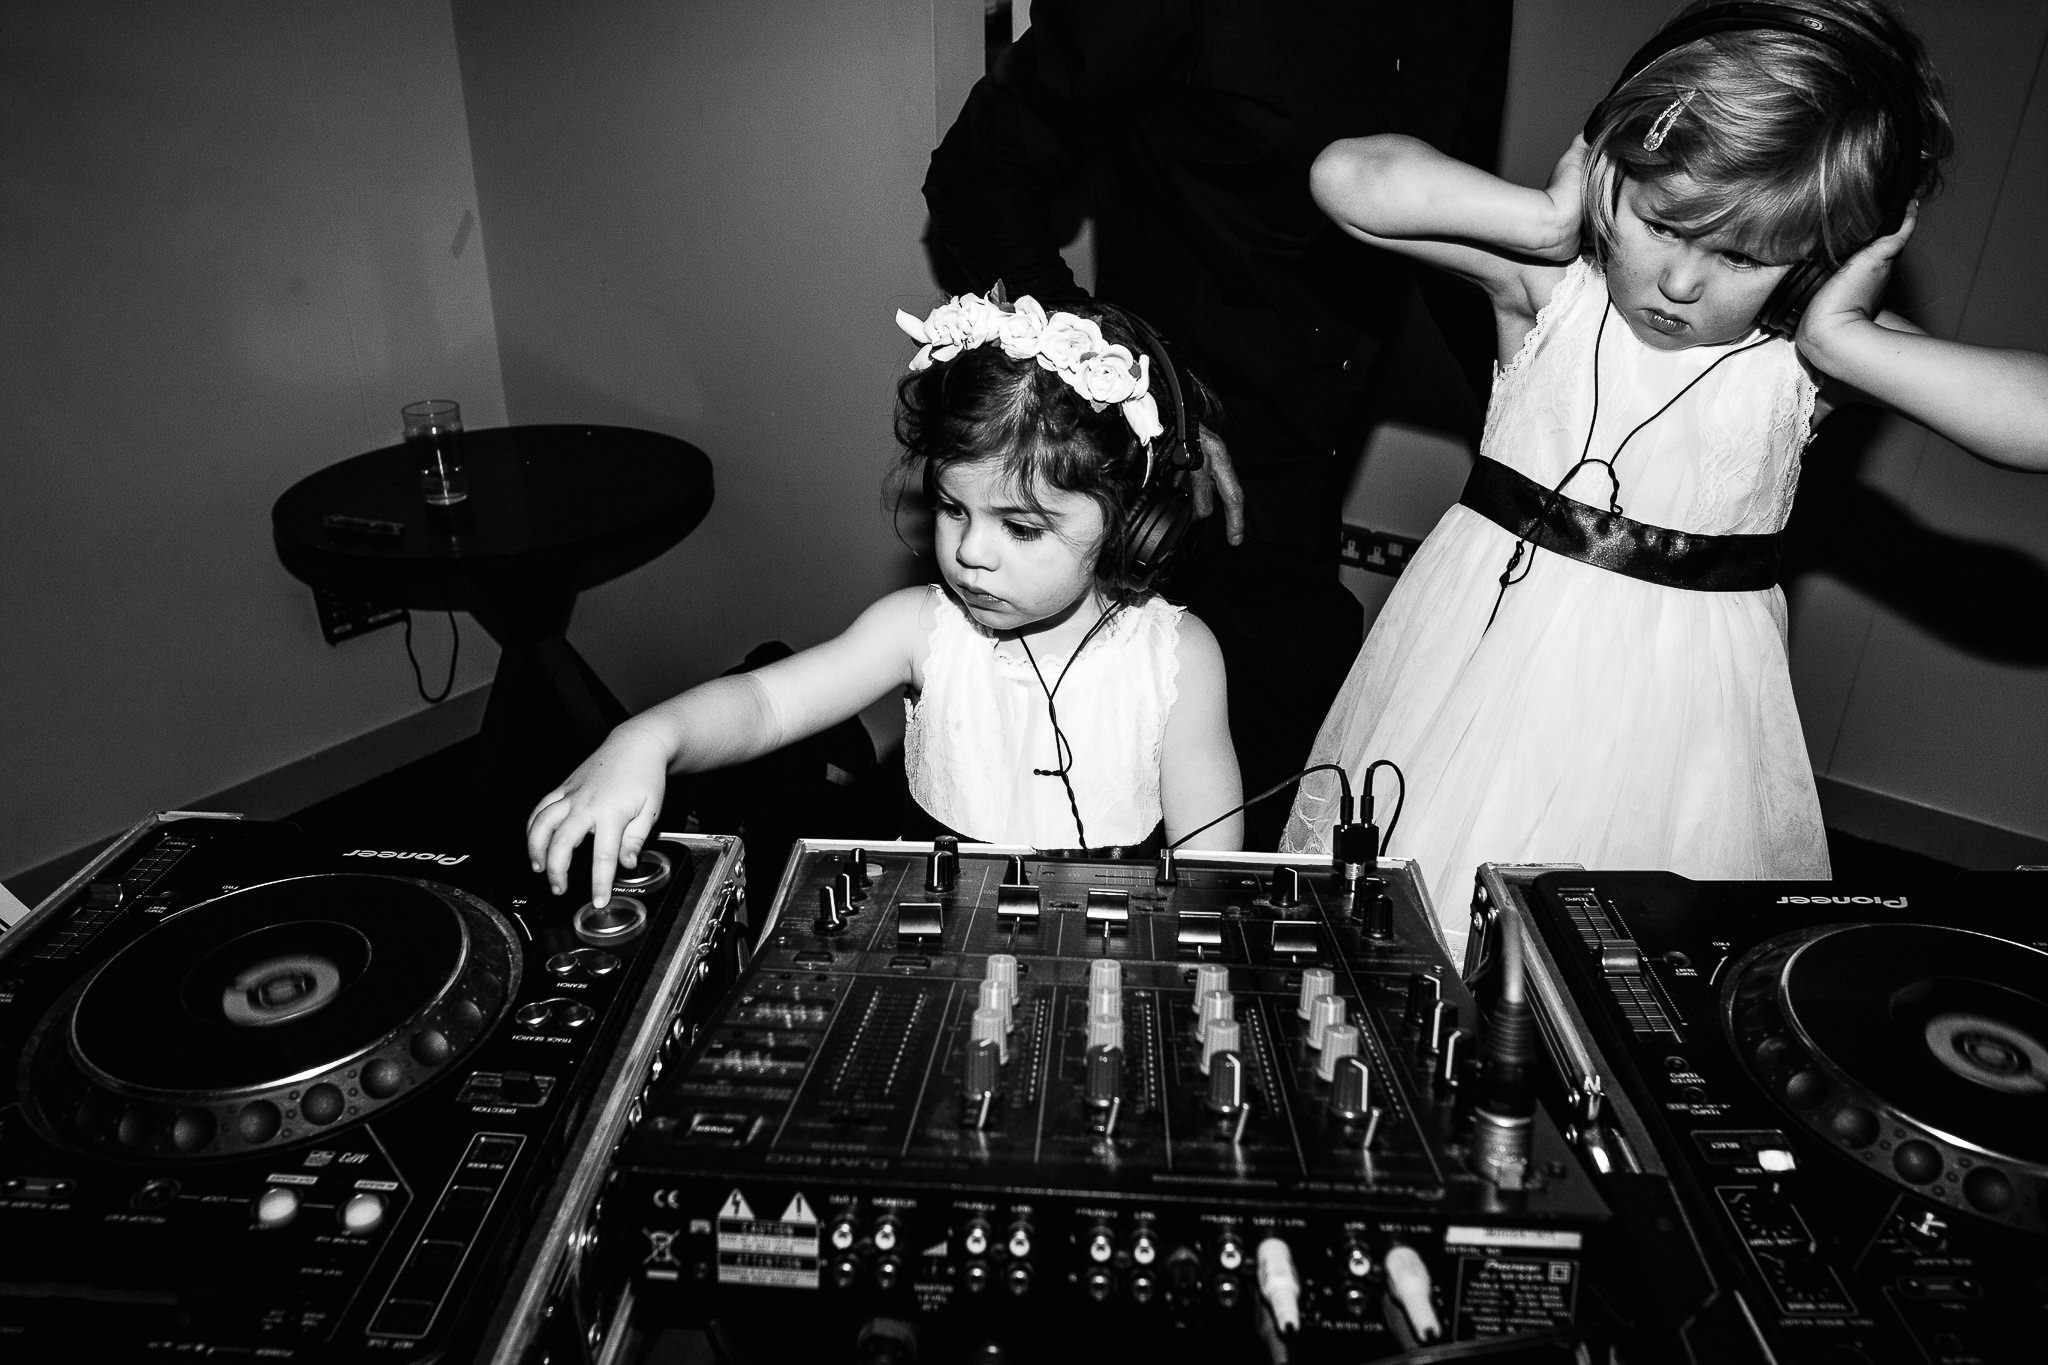 kids at weddings dj music